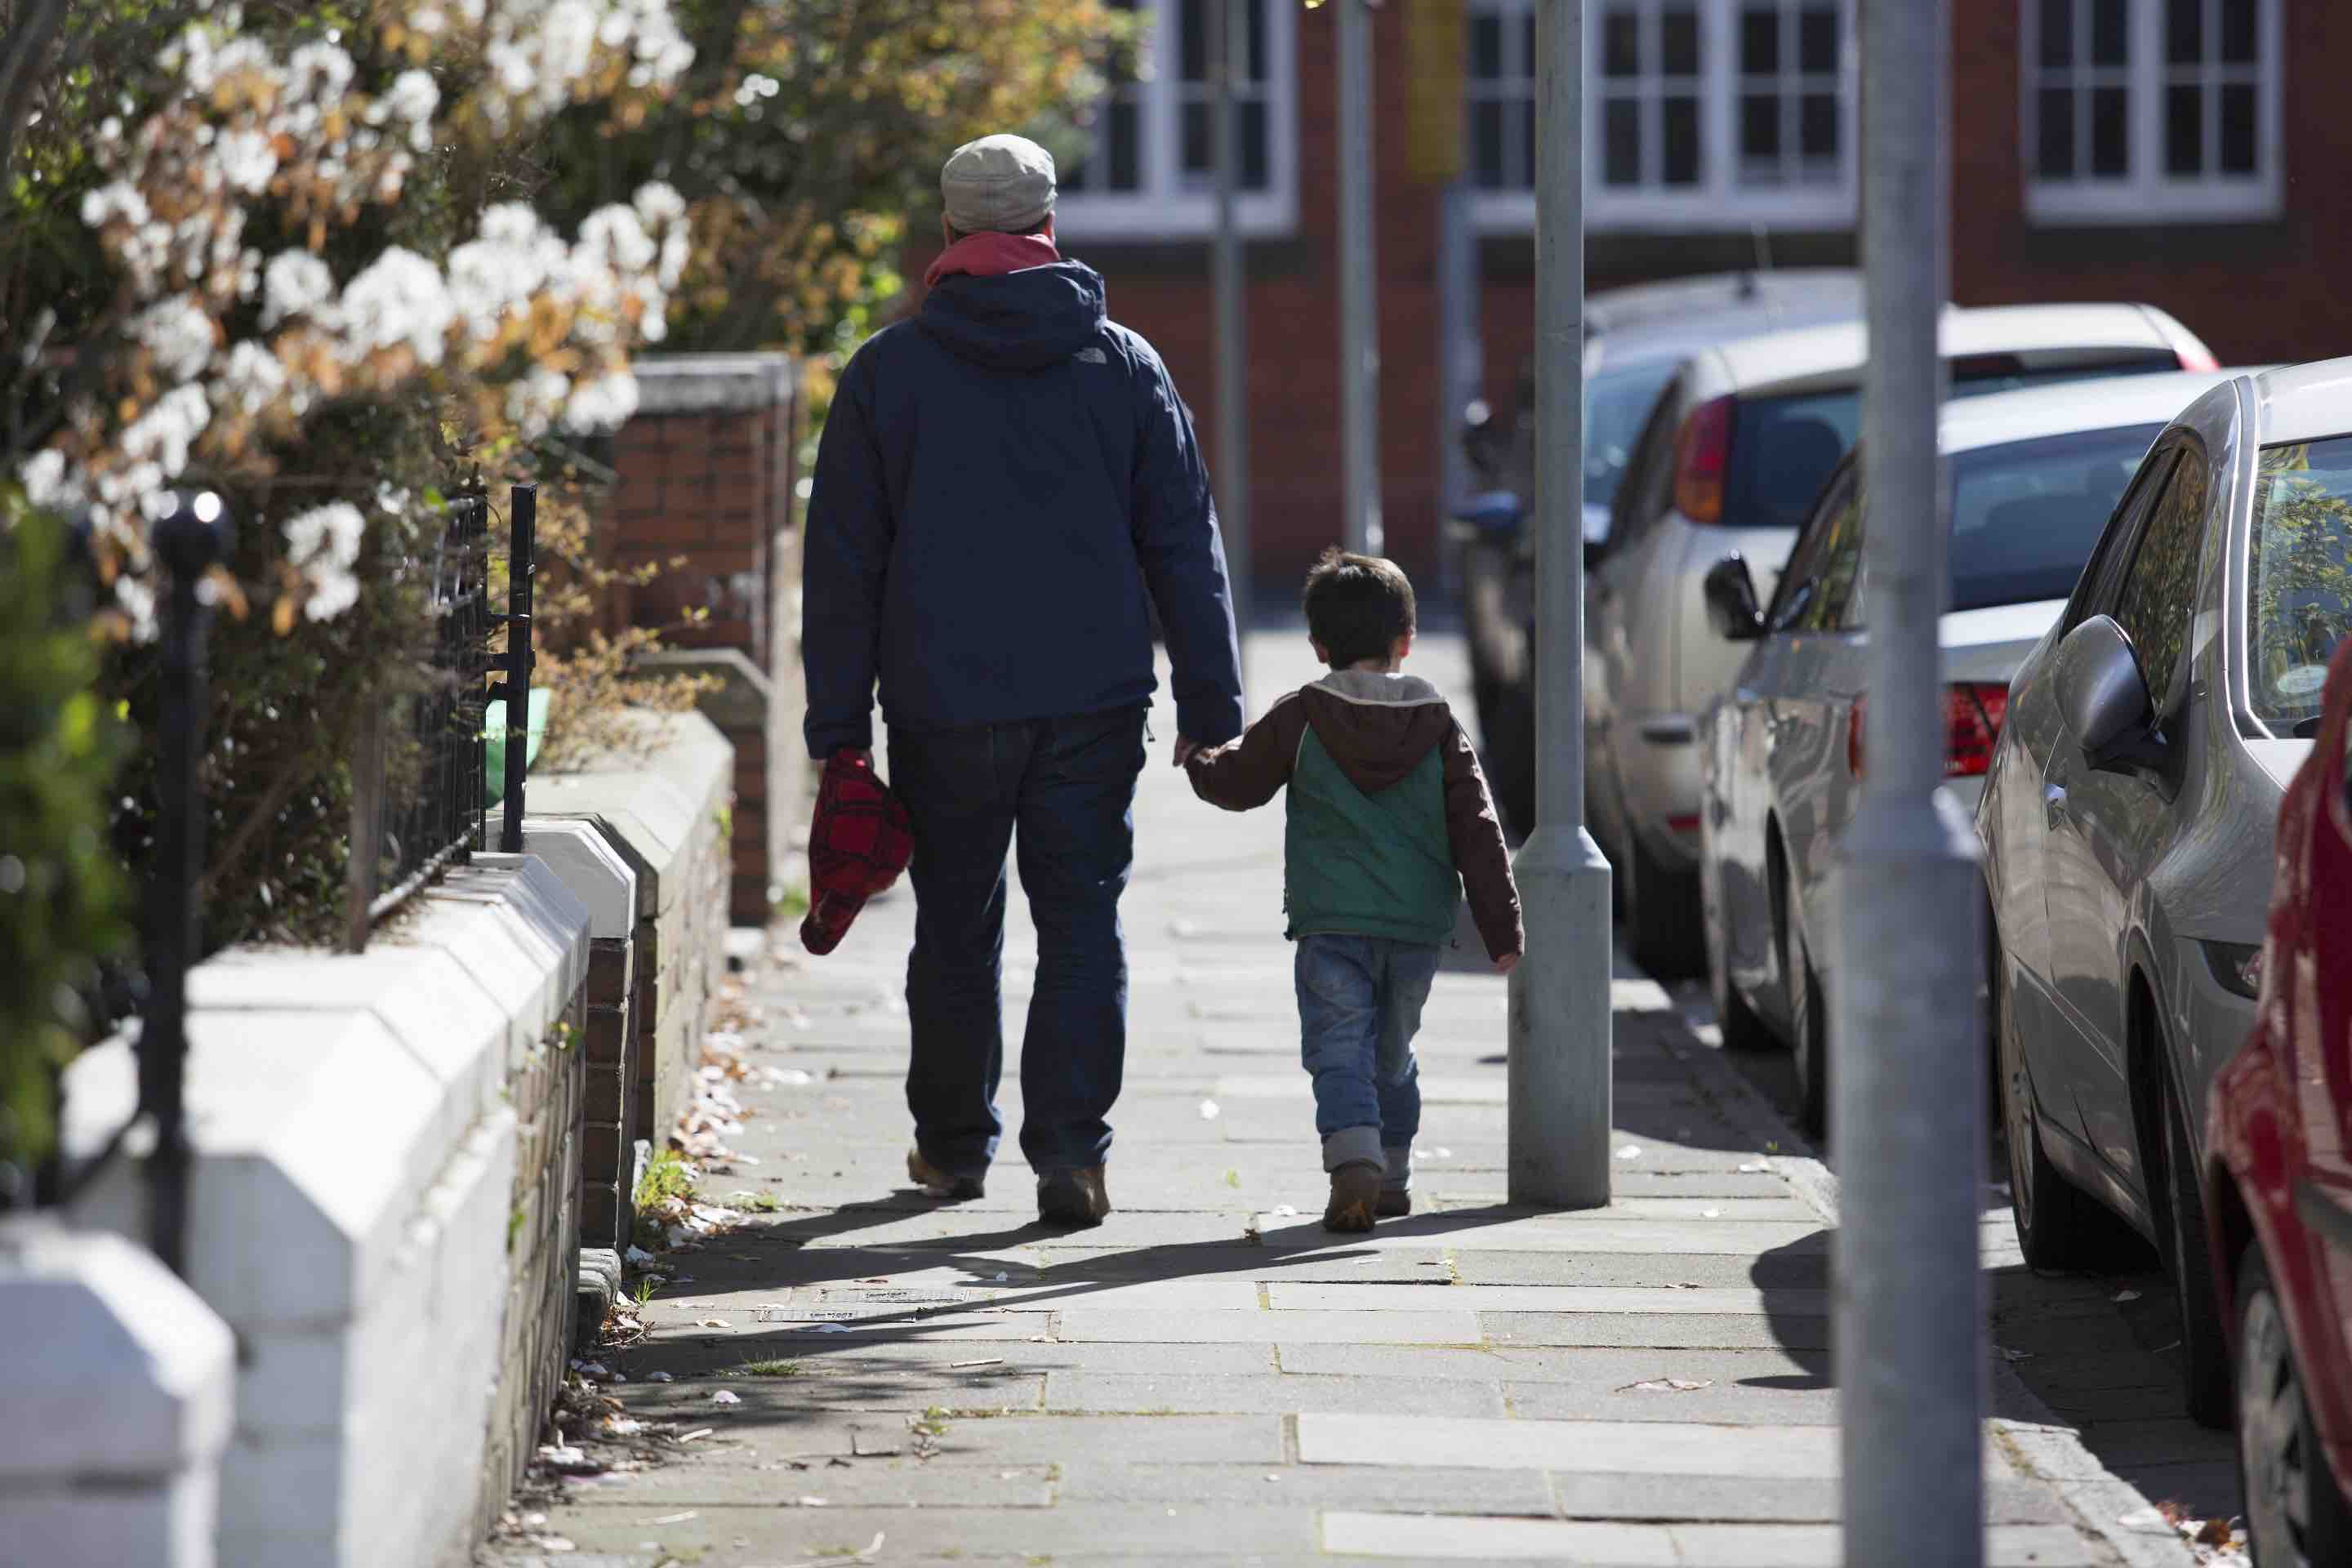 man and child walking together